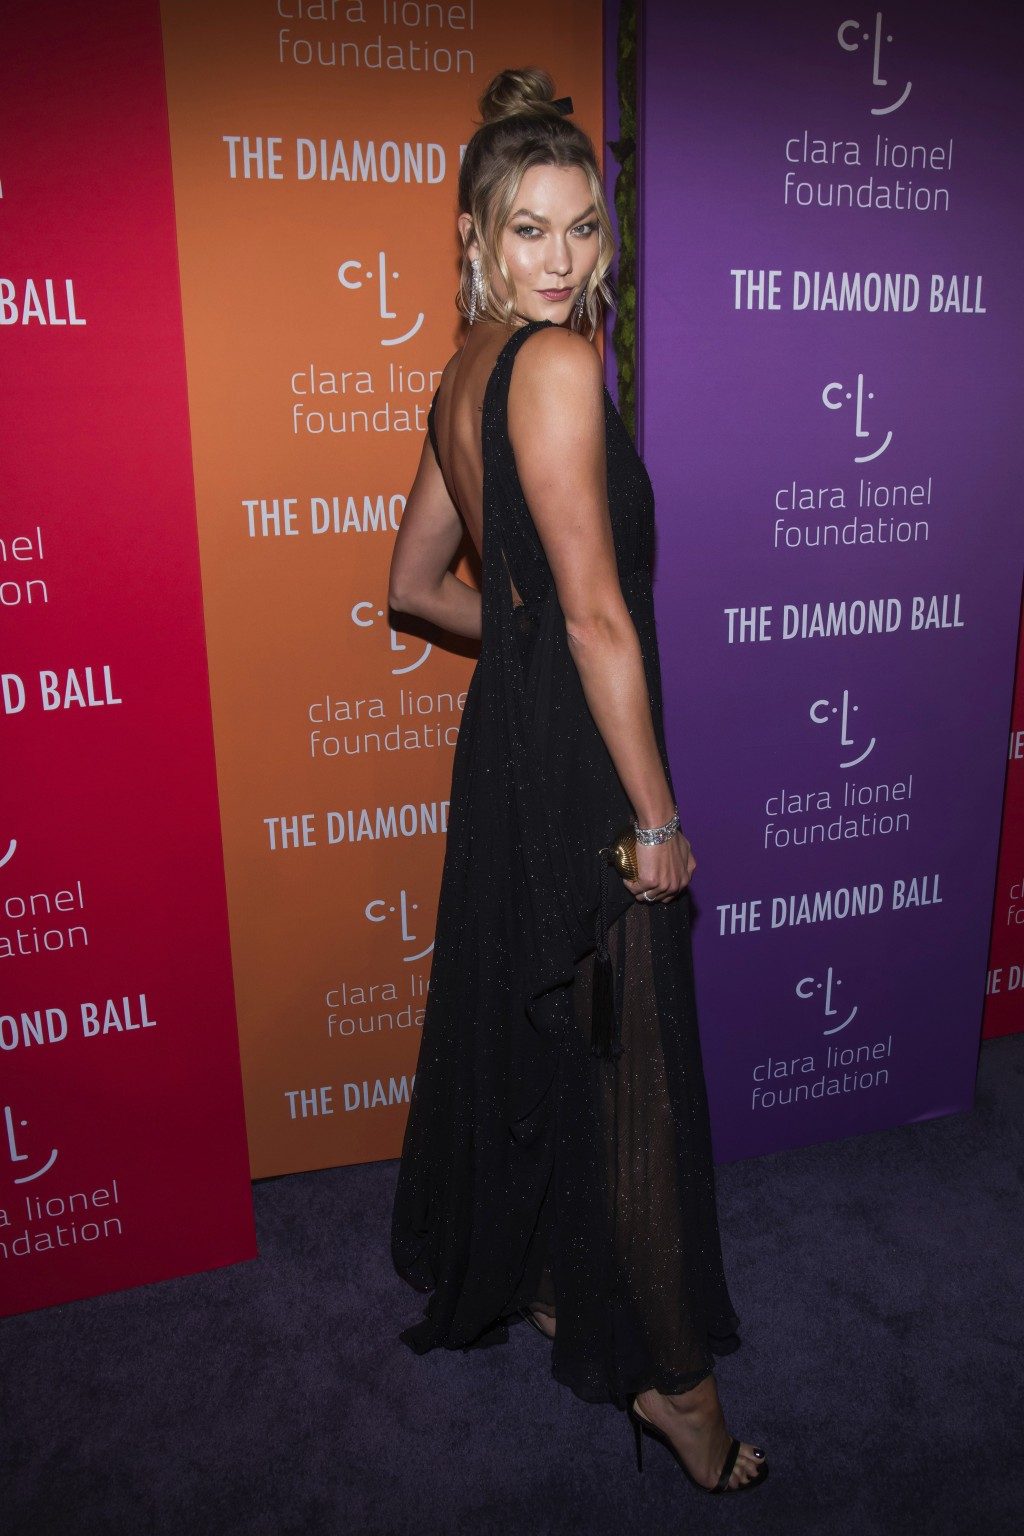 Karlie Kloss attends the 5th annual Diamond Ball benefit gala at Cipriani Wall Street on Thursday, Sept. 12, 2019, in New York. (Photo by Charles Syke